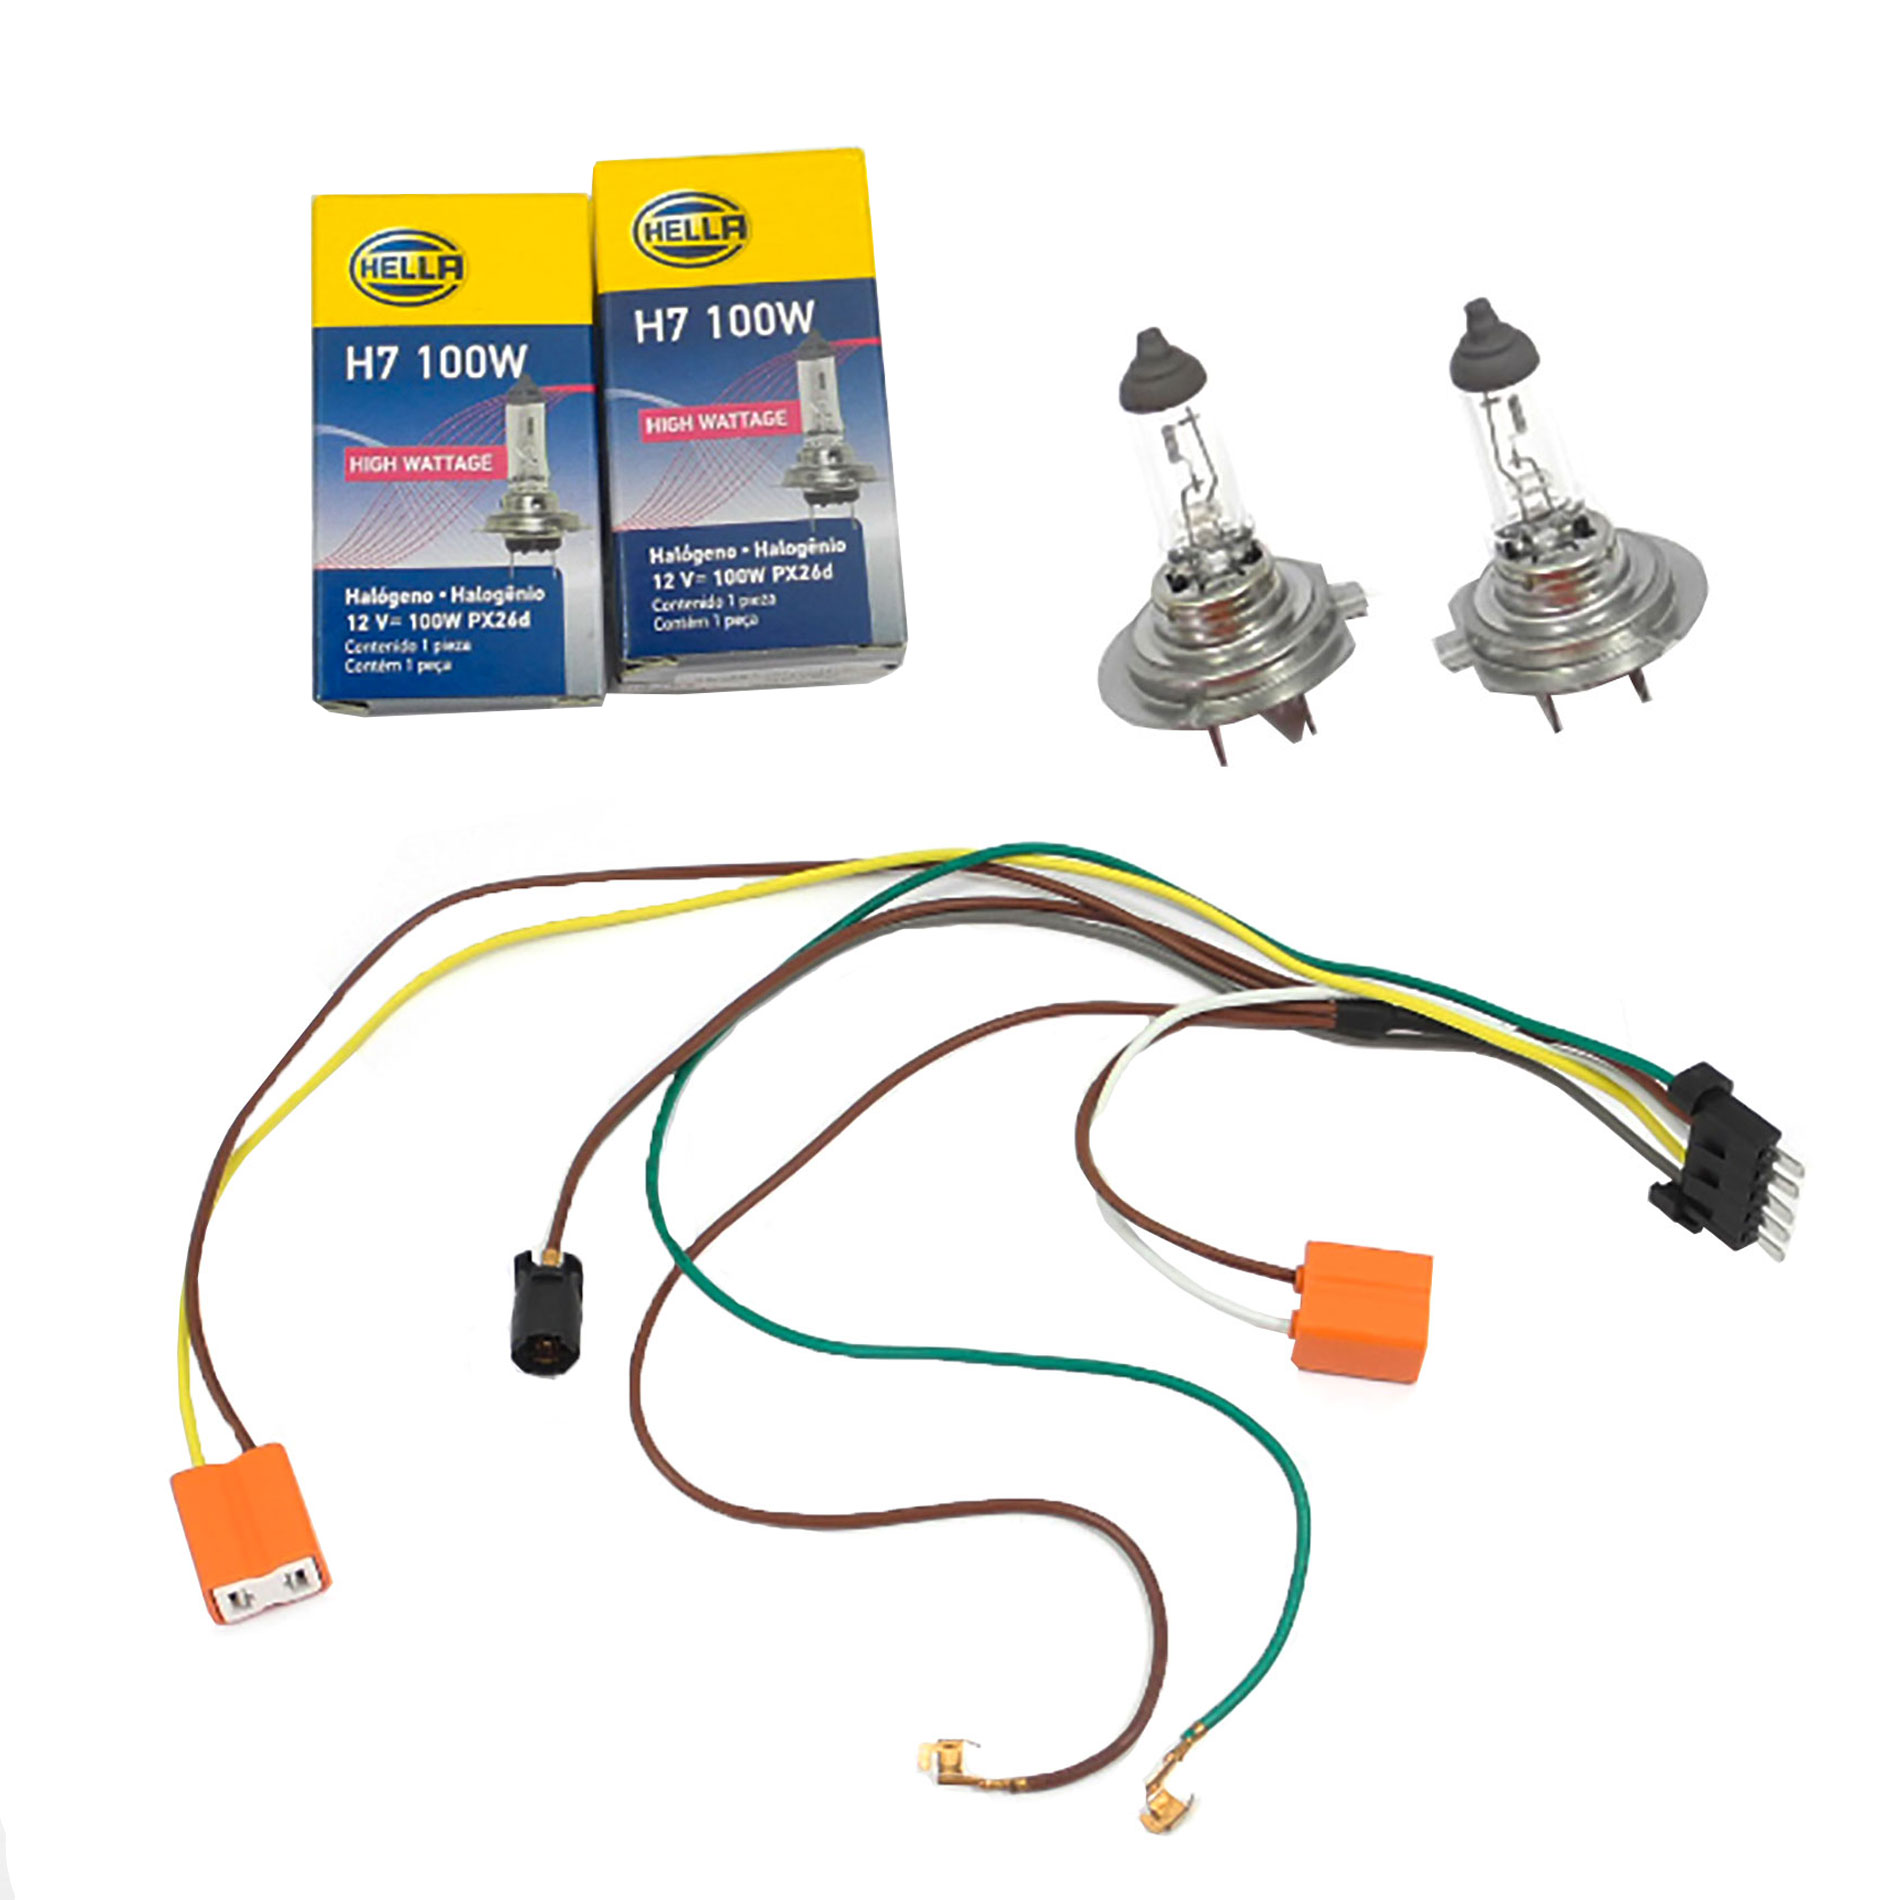 details about for c32 c240 c230 benz headlight wiring harness \u0026 headlight bulb h7 100w l r Benz C32 Engine Wiring Harness